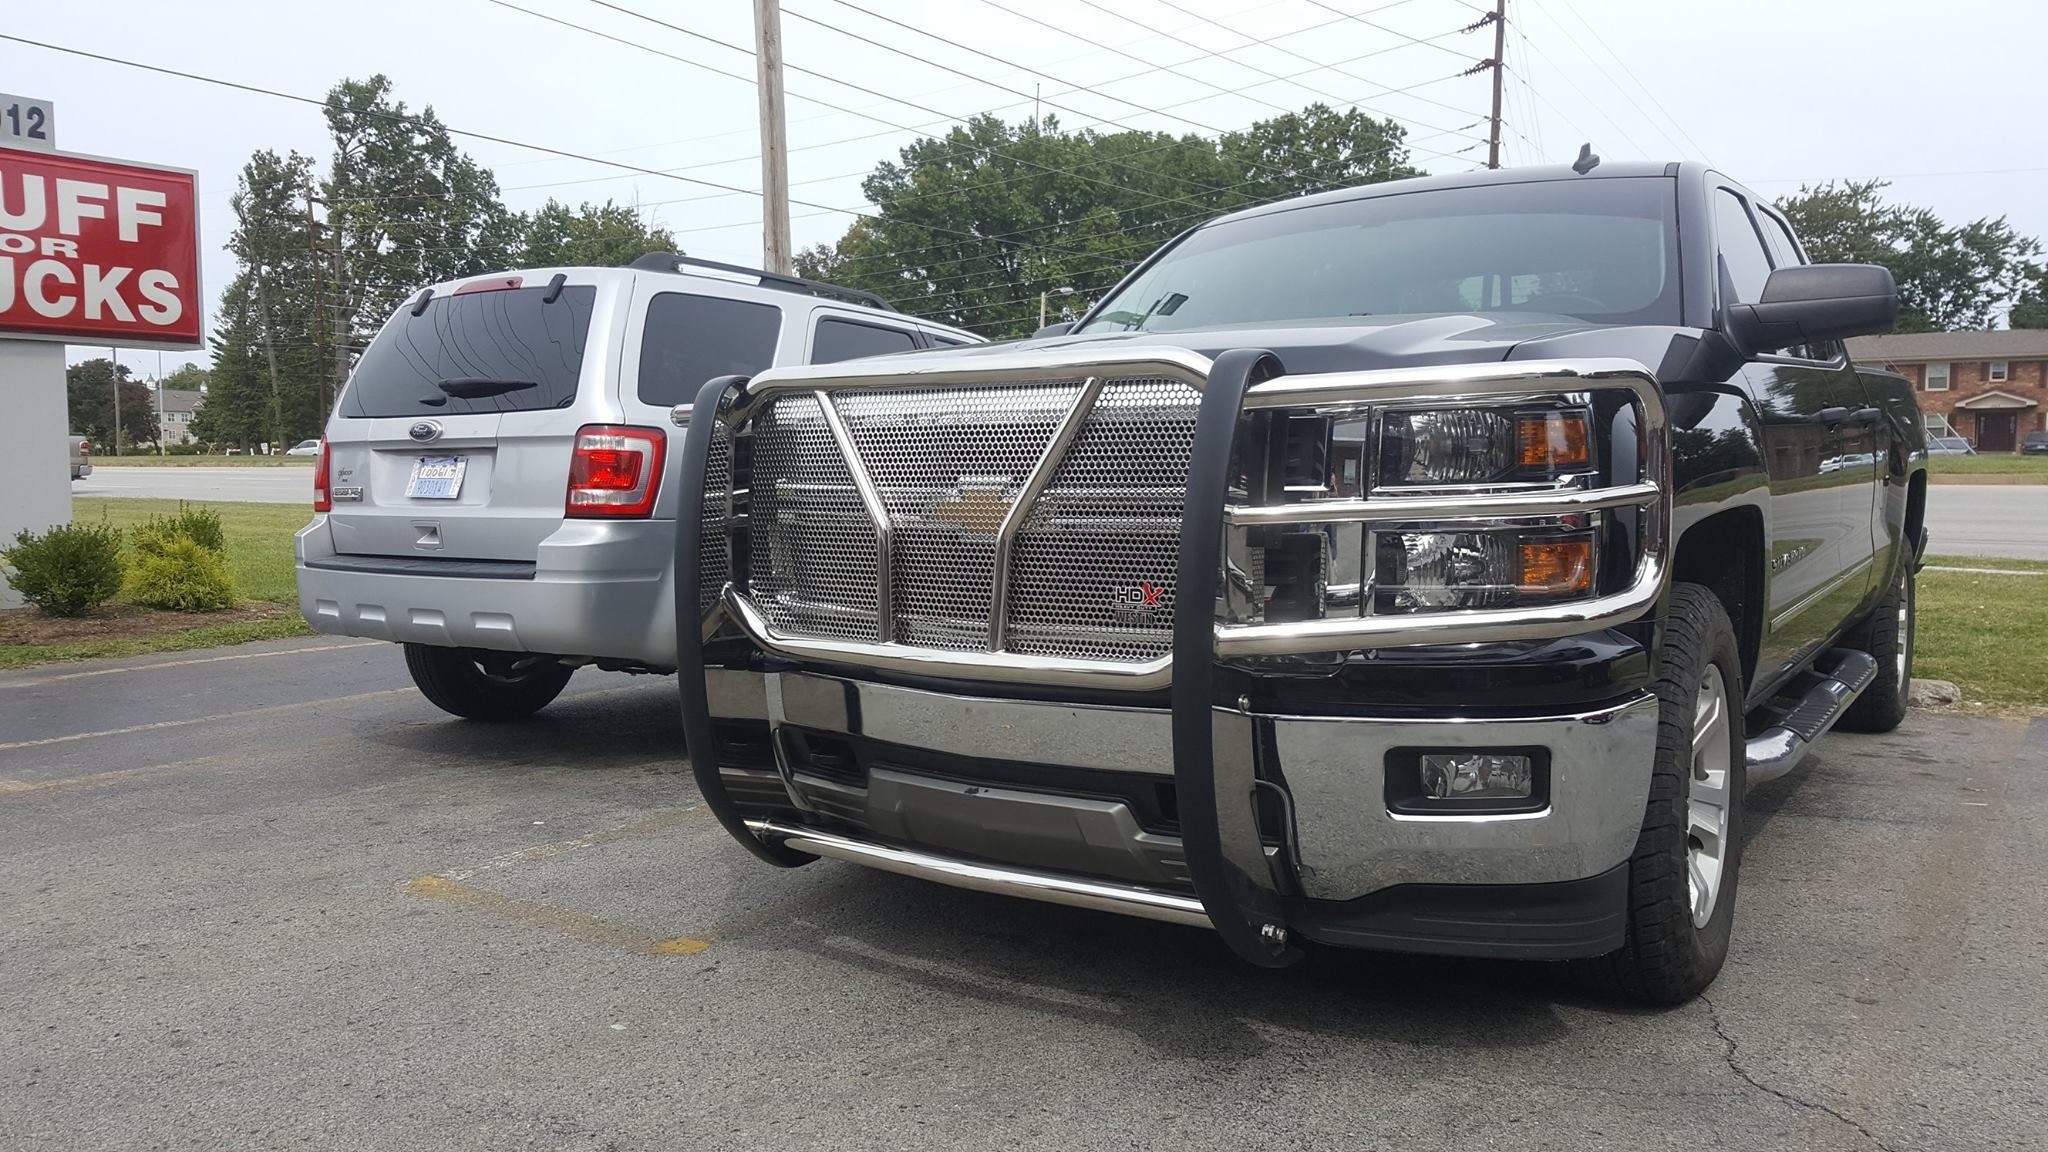 Bed Liners Near Me >> Truck Accessories Store In Louisville KY | Truck Accessories Store Near Me | Stuff For Trucks